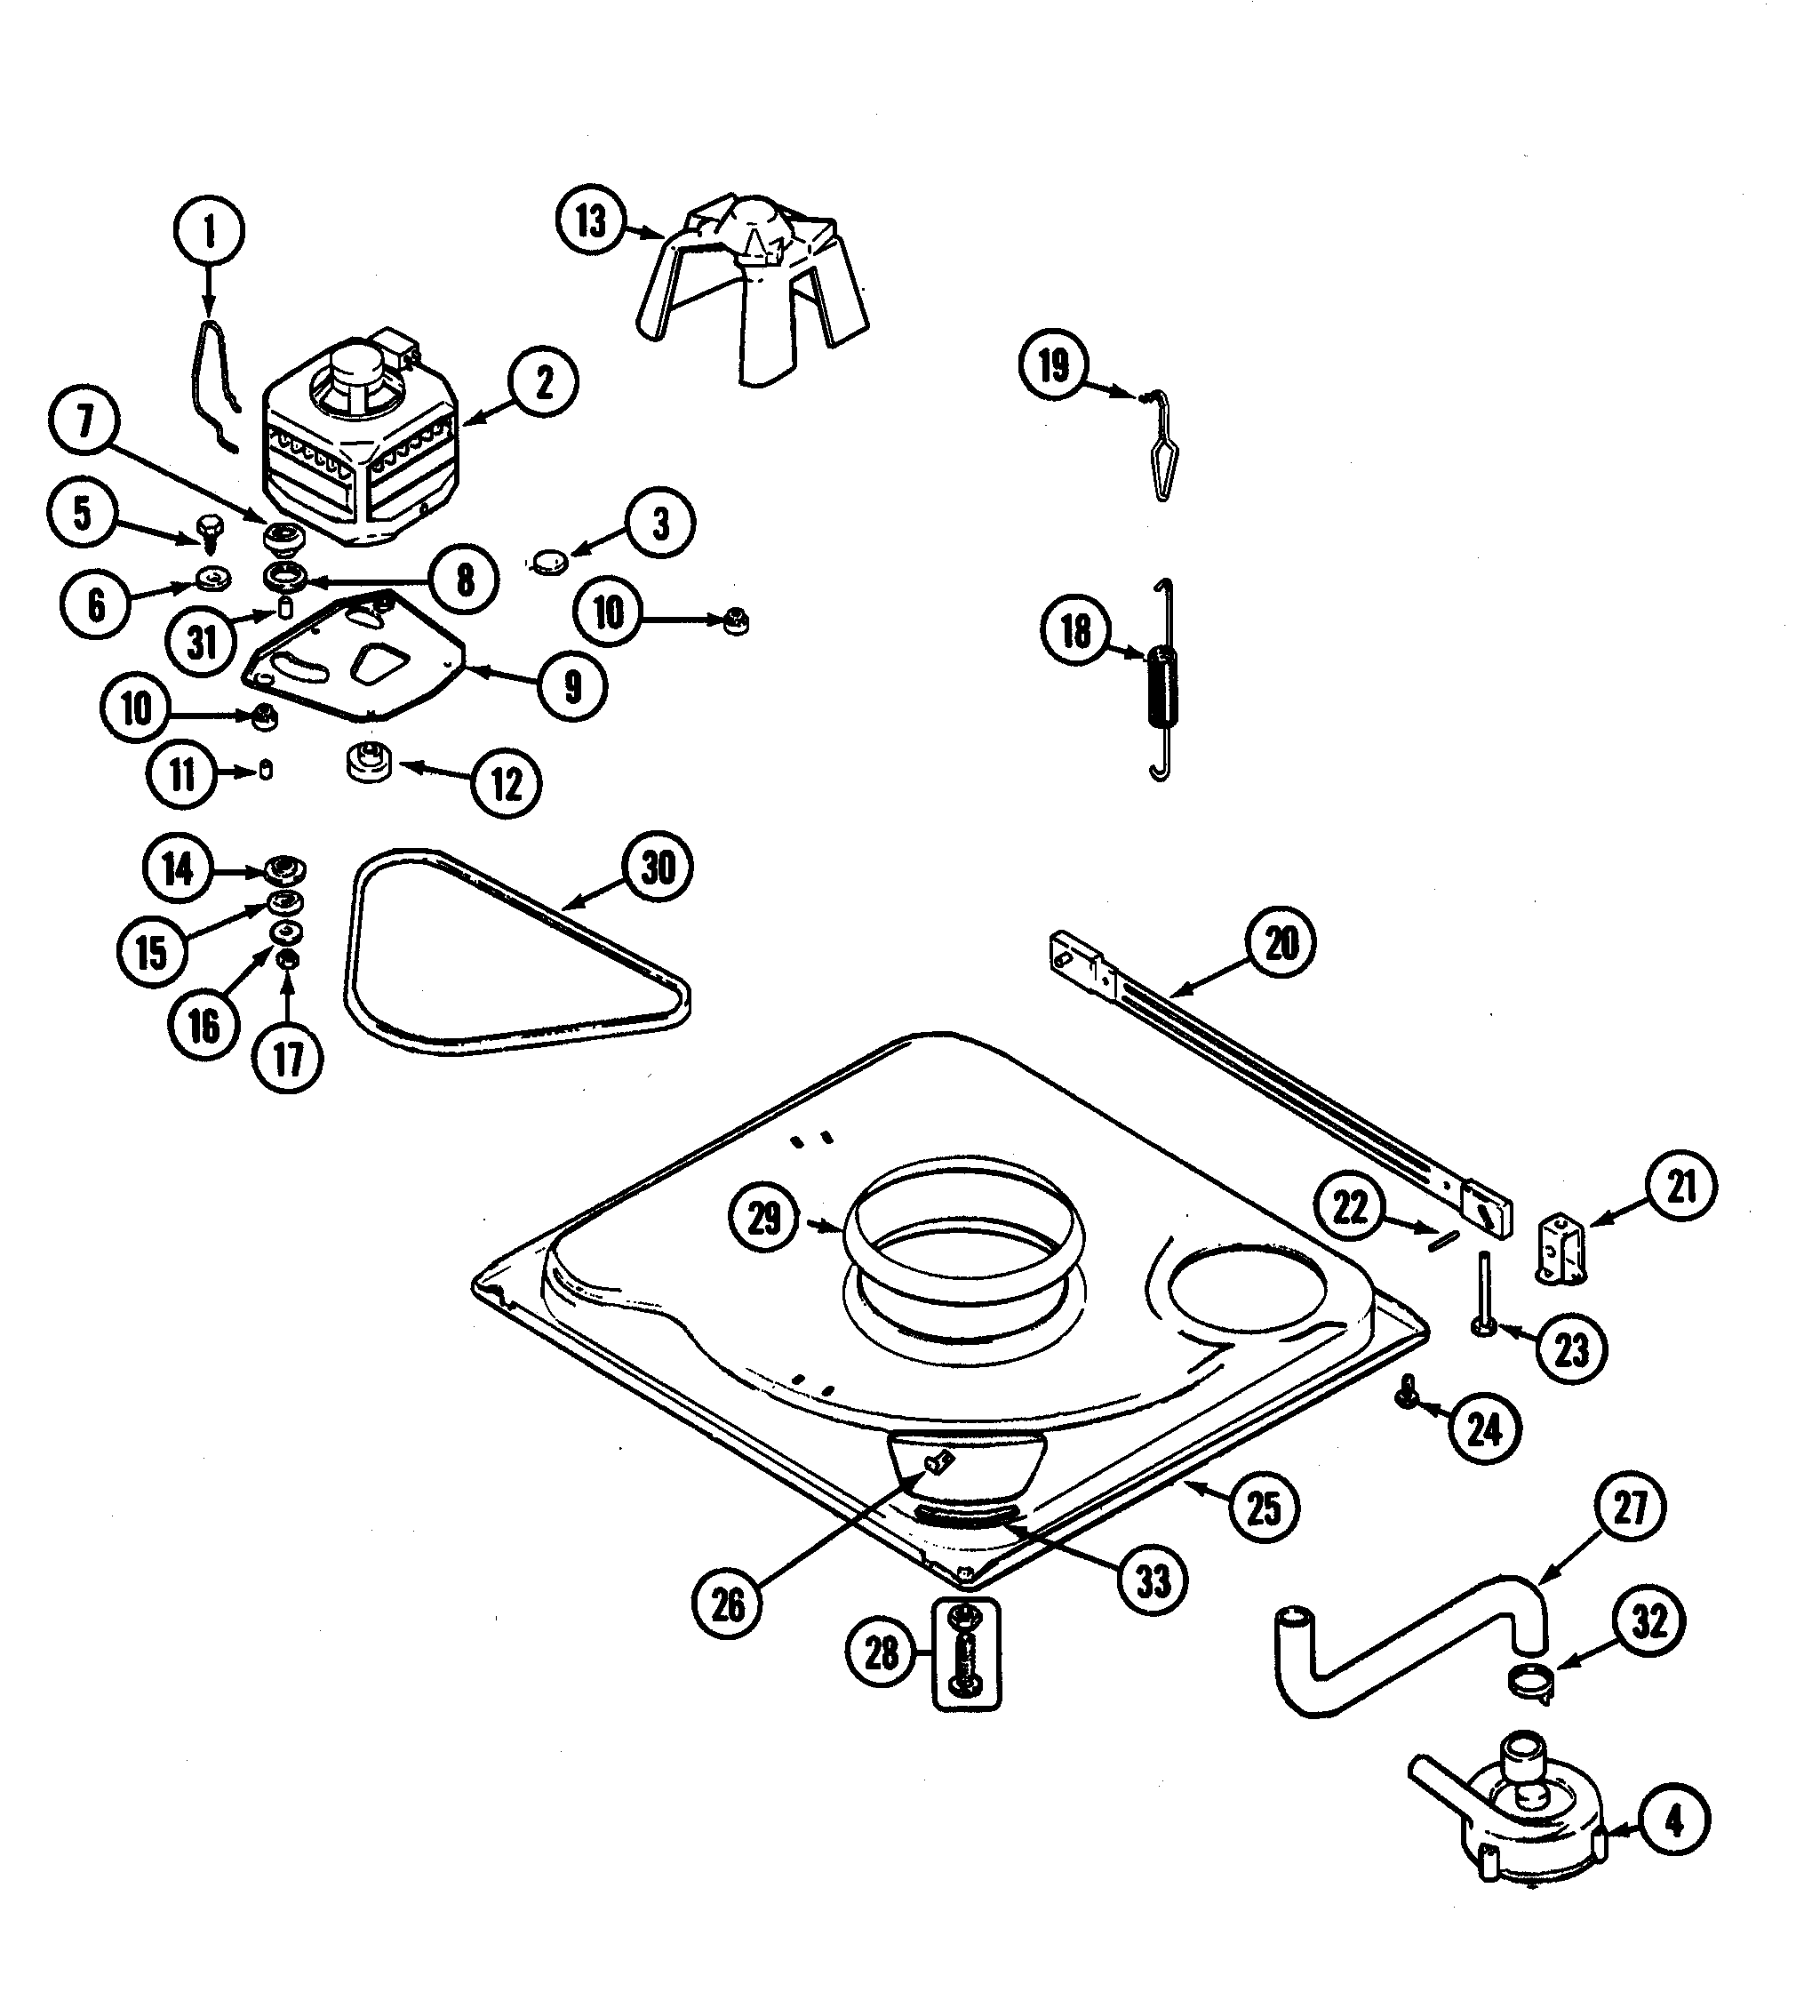 diagram further maytag dishwasher parts diagram on whirlpool cabrio diagram likewise whirlpool cabrio washer parts diagram further [ 2048 x 2268 Pixel ]